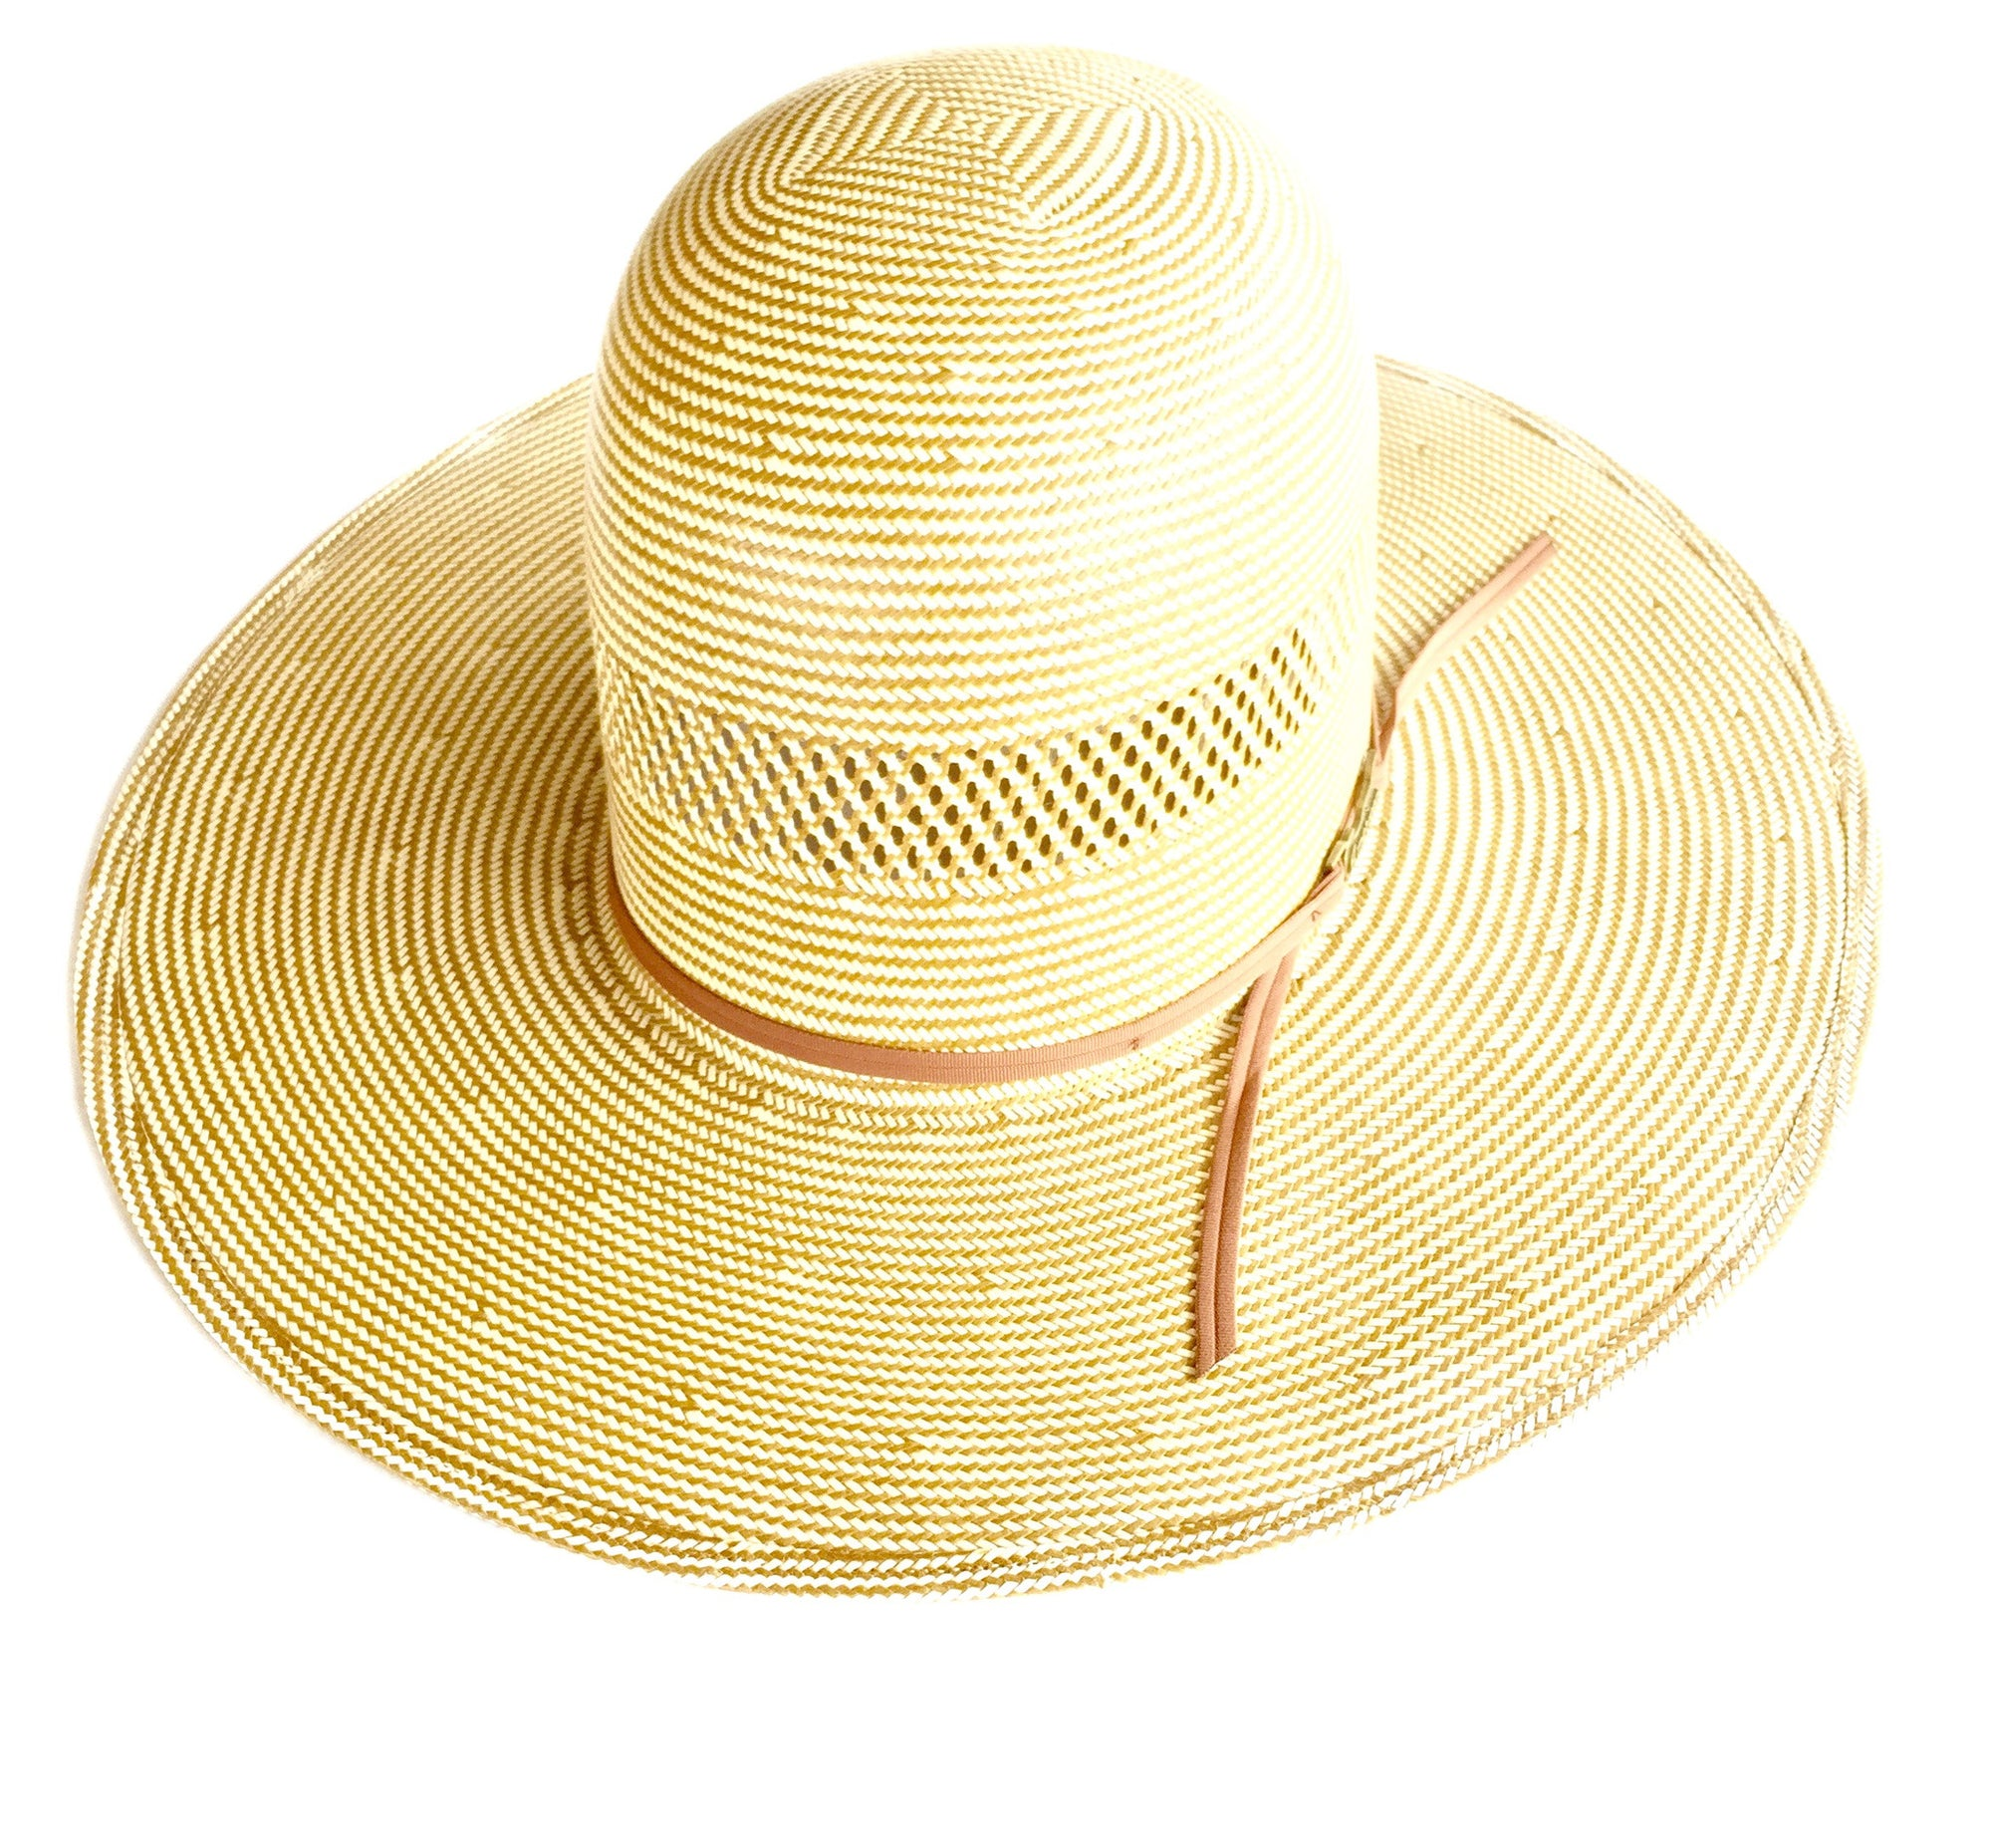 "4 1/2"" Brim Straw Hat by American Hat Co., Straw Hat, American Hat Co. - Lazy J Ranch Wear"